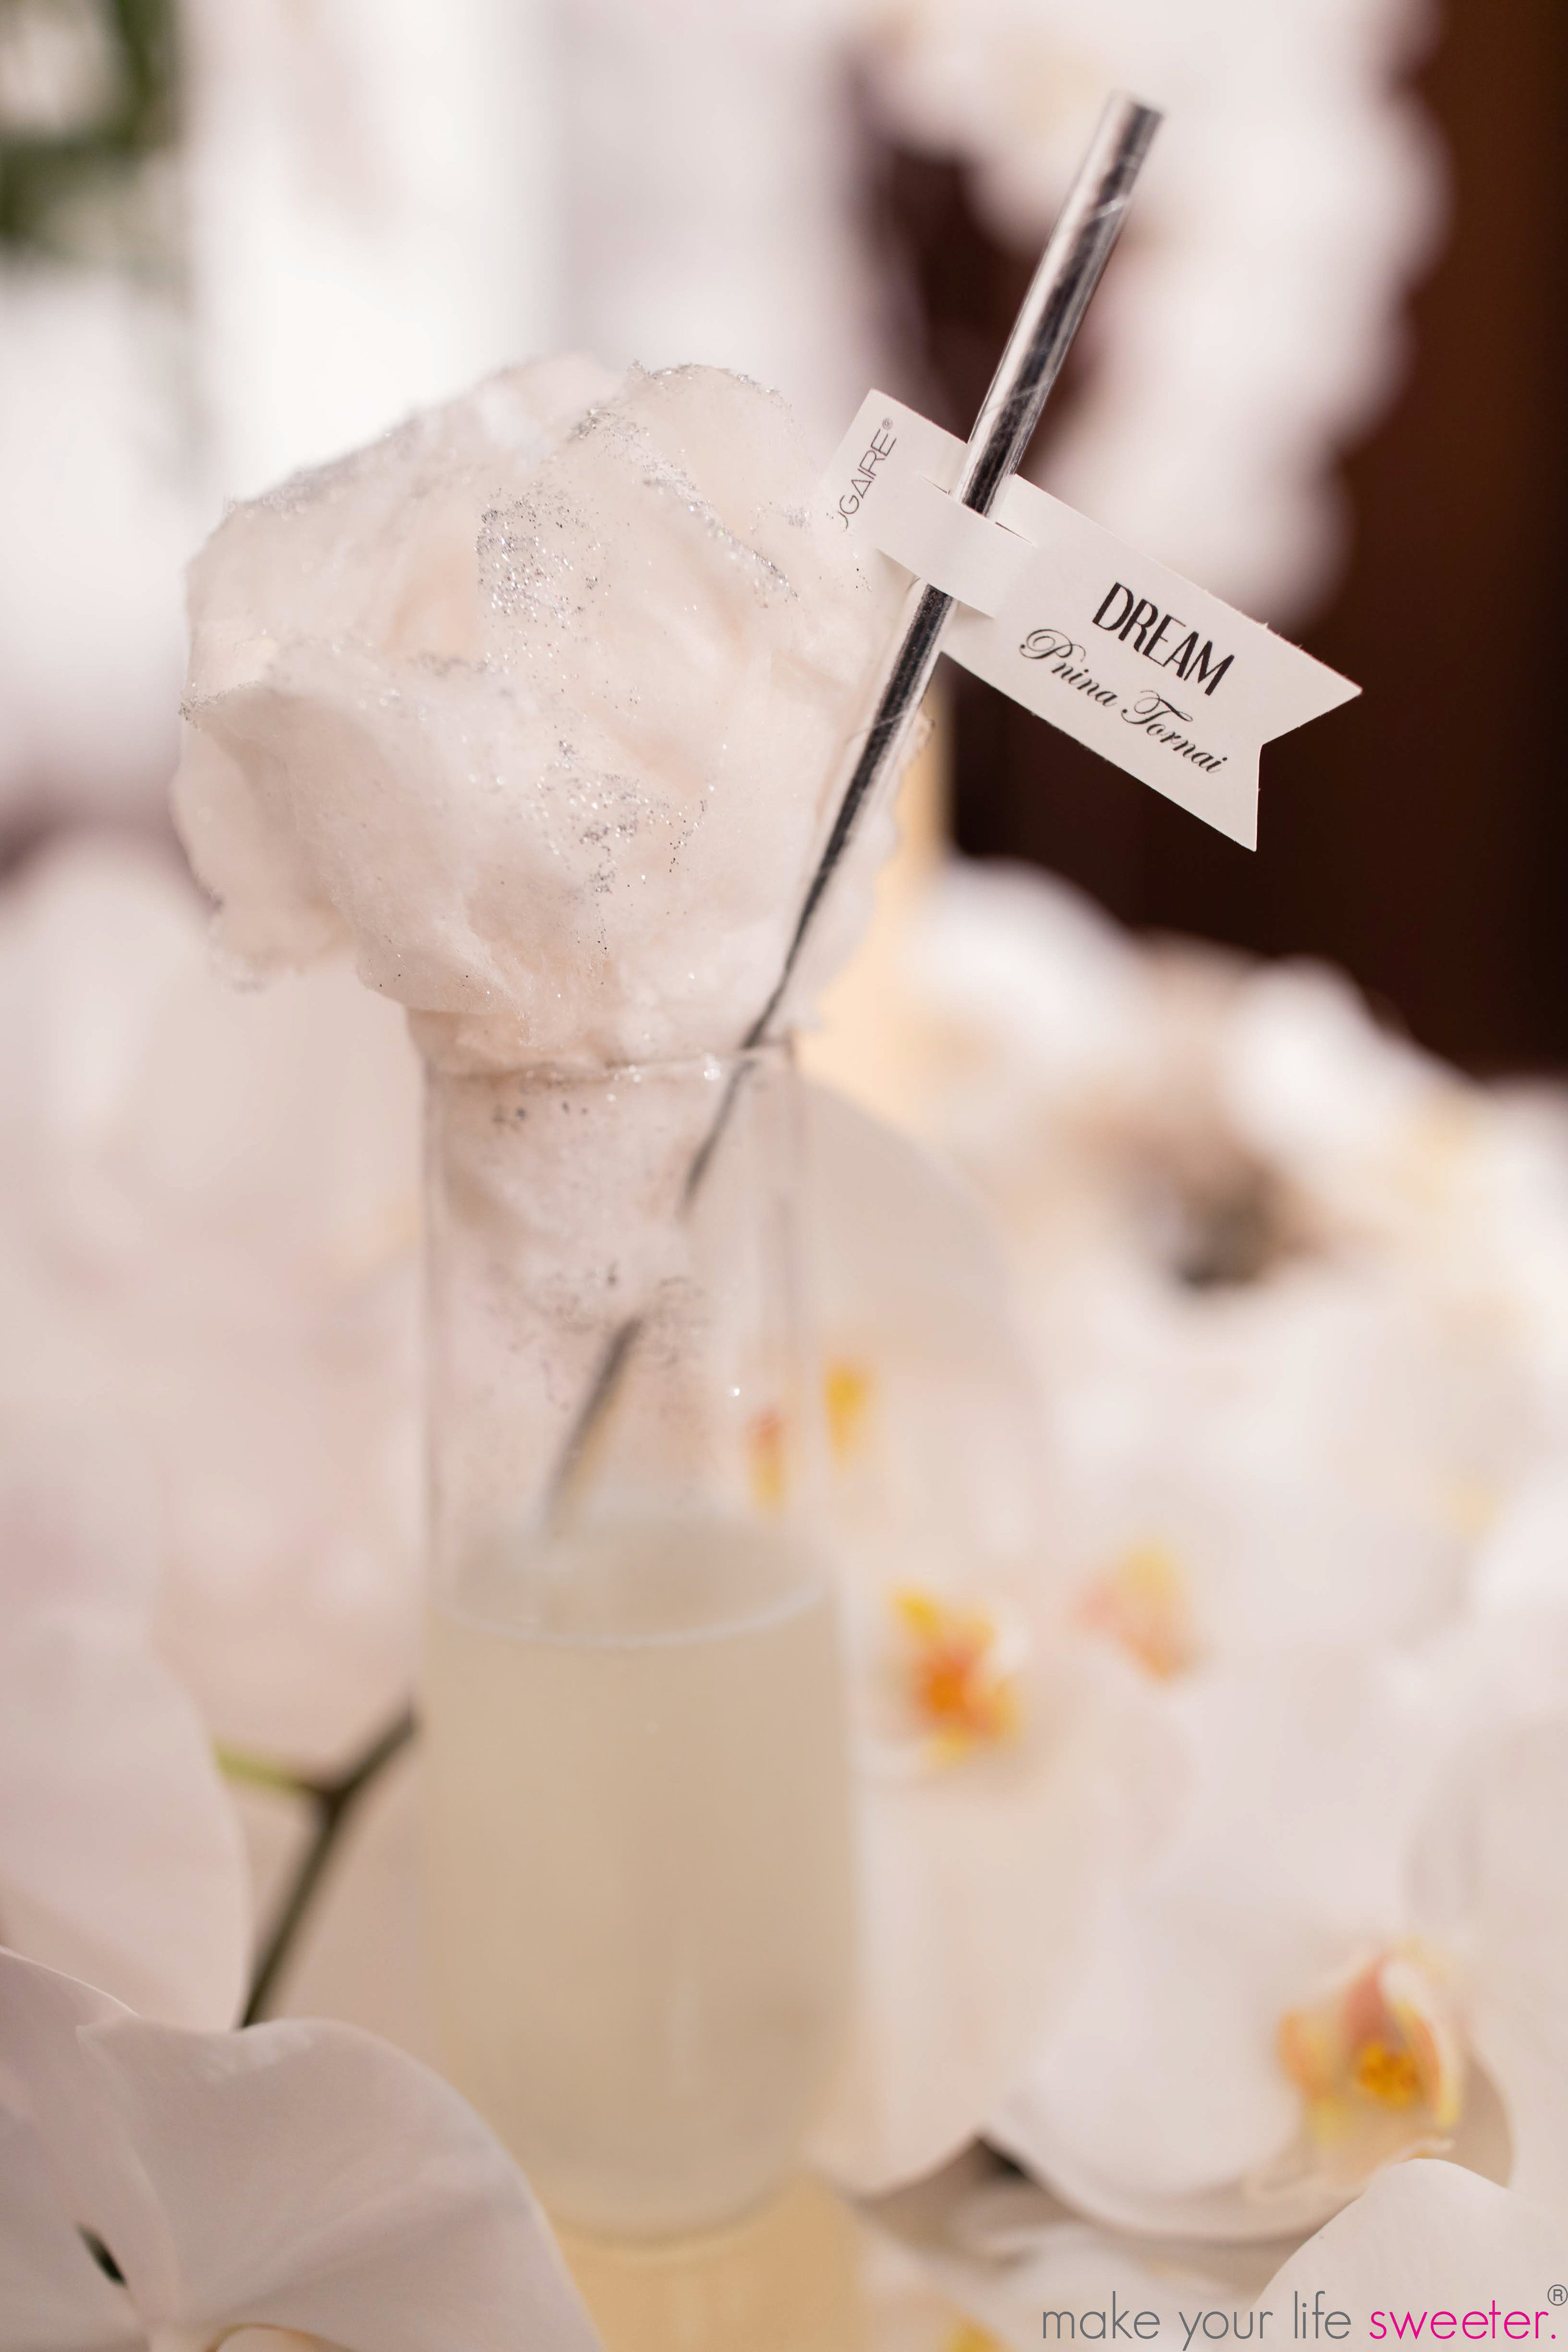 Make Your Life Sweeter Events - Kleinfeld's Annual Bridal Week Fashion Show - The Pnina Tornai Collection - Sugaire Organic Cotton Candy Infusion with Customized Hashtag Flags